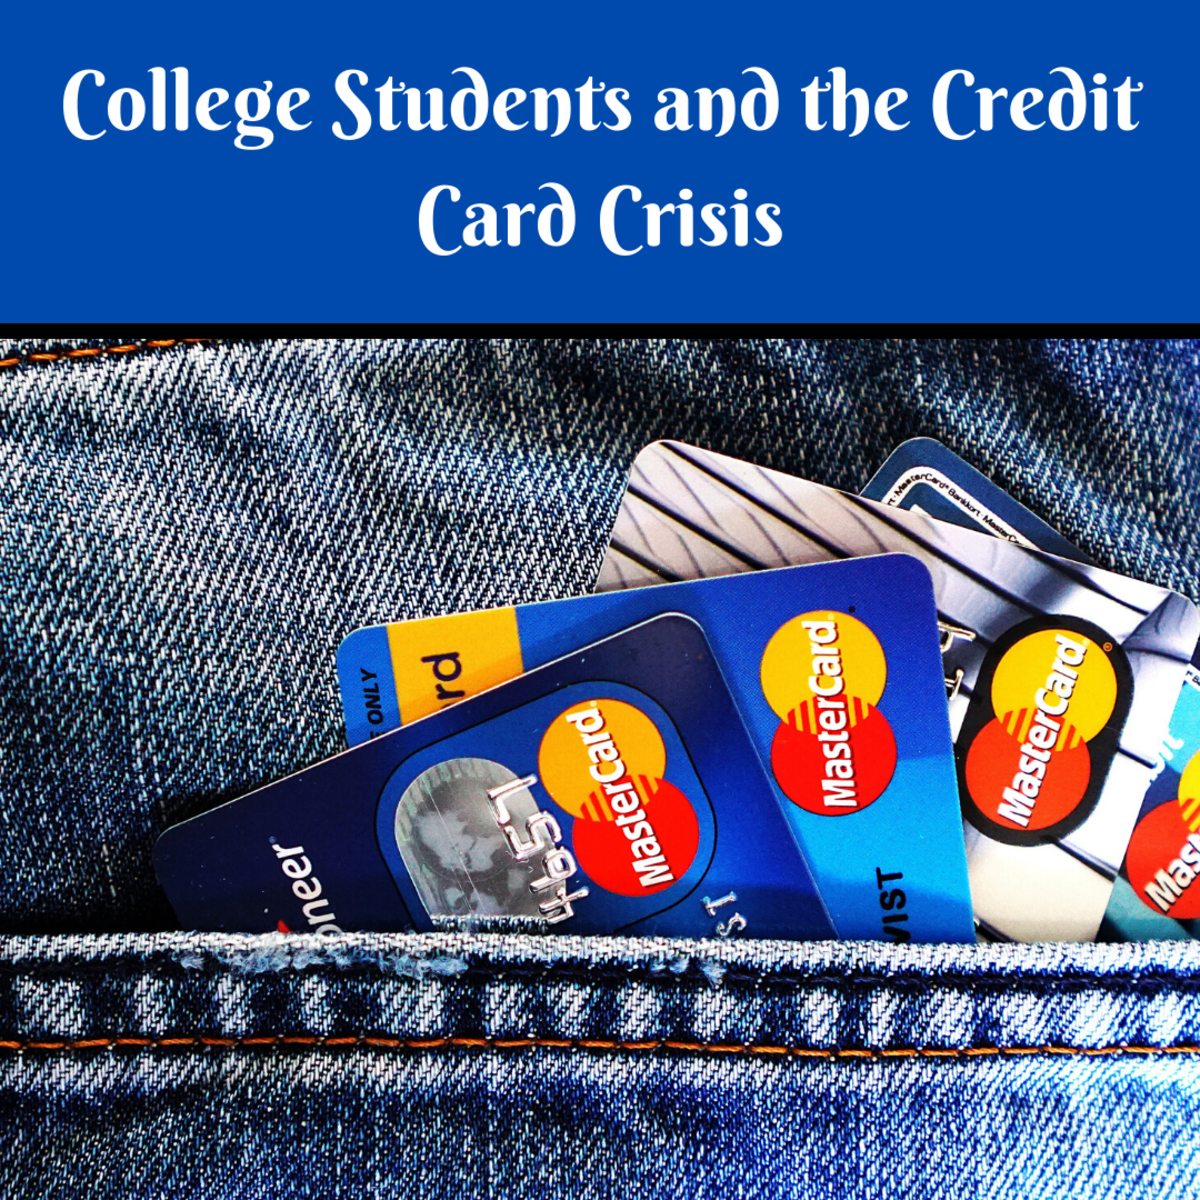 College Students and the Credit Card Crisis